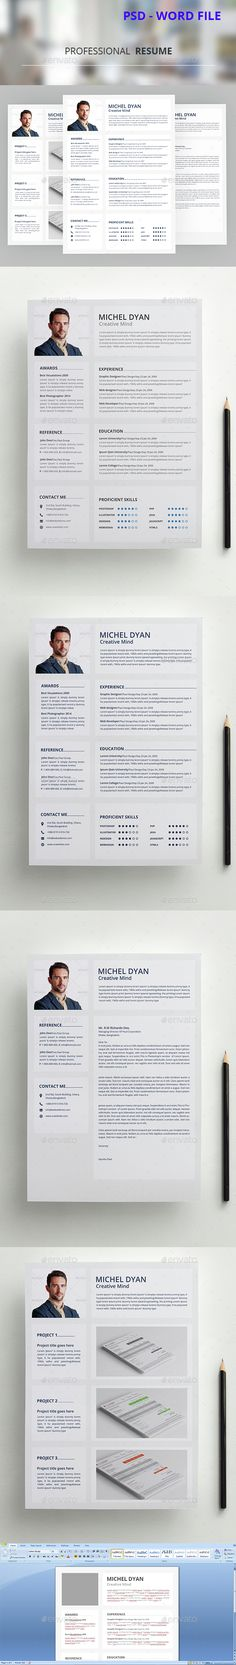 Resume Resume cv, Cv template and Ai illustrator - net resume